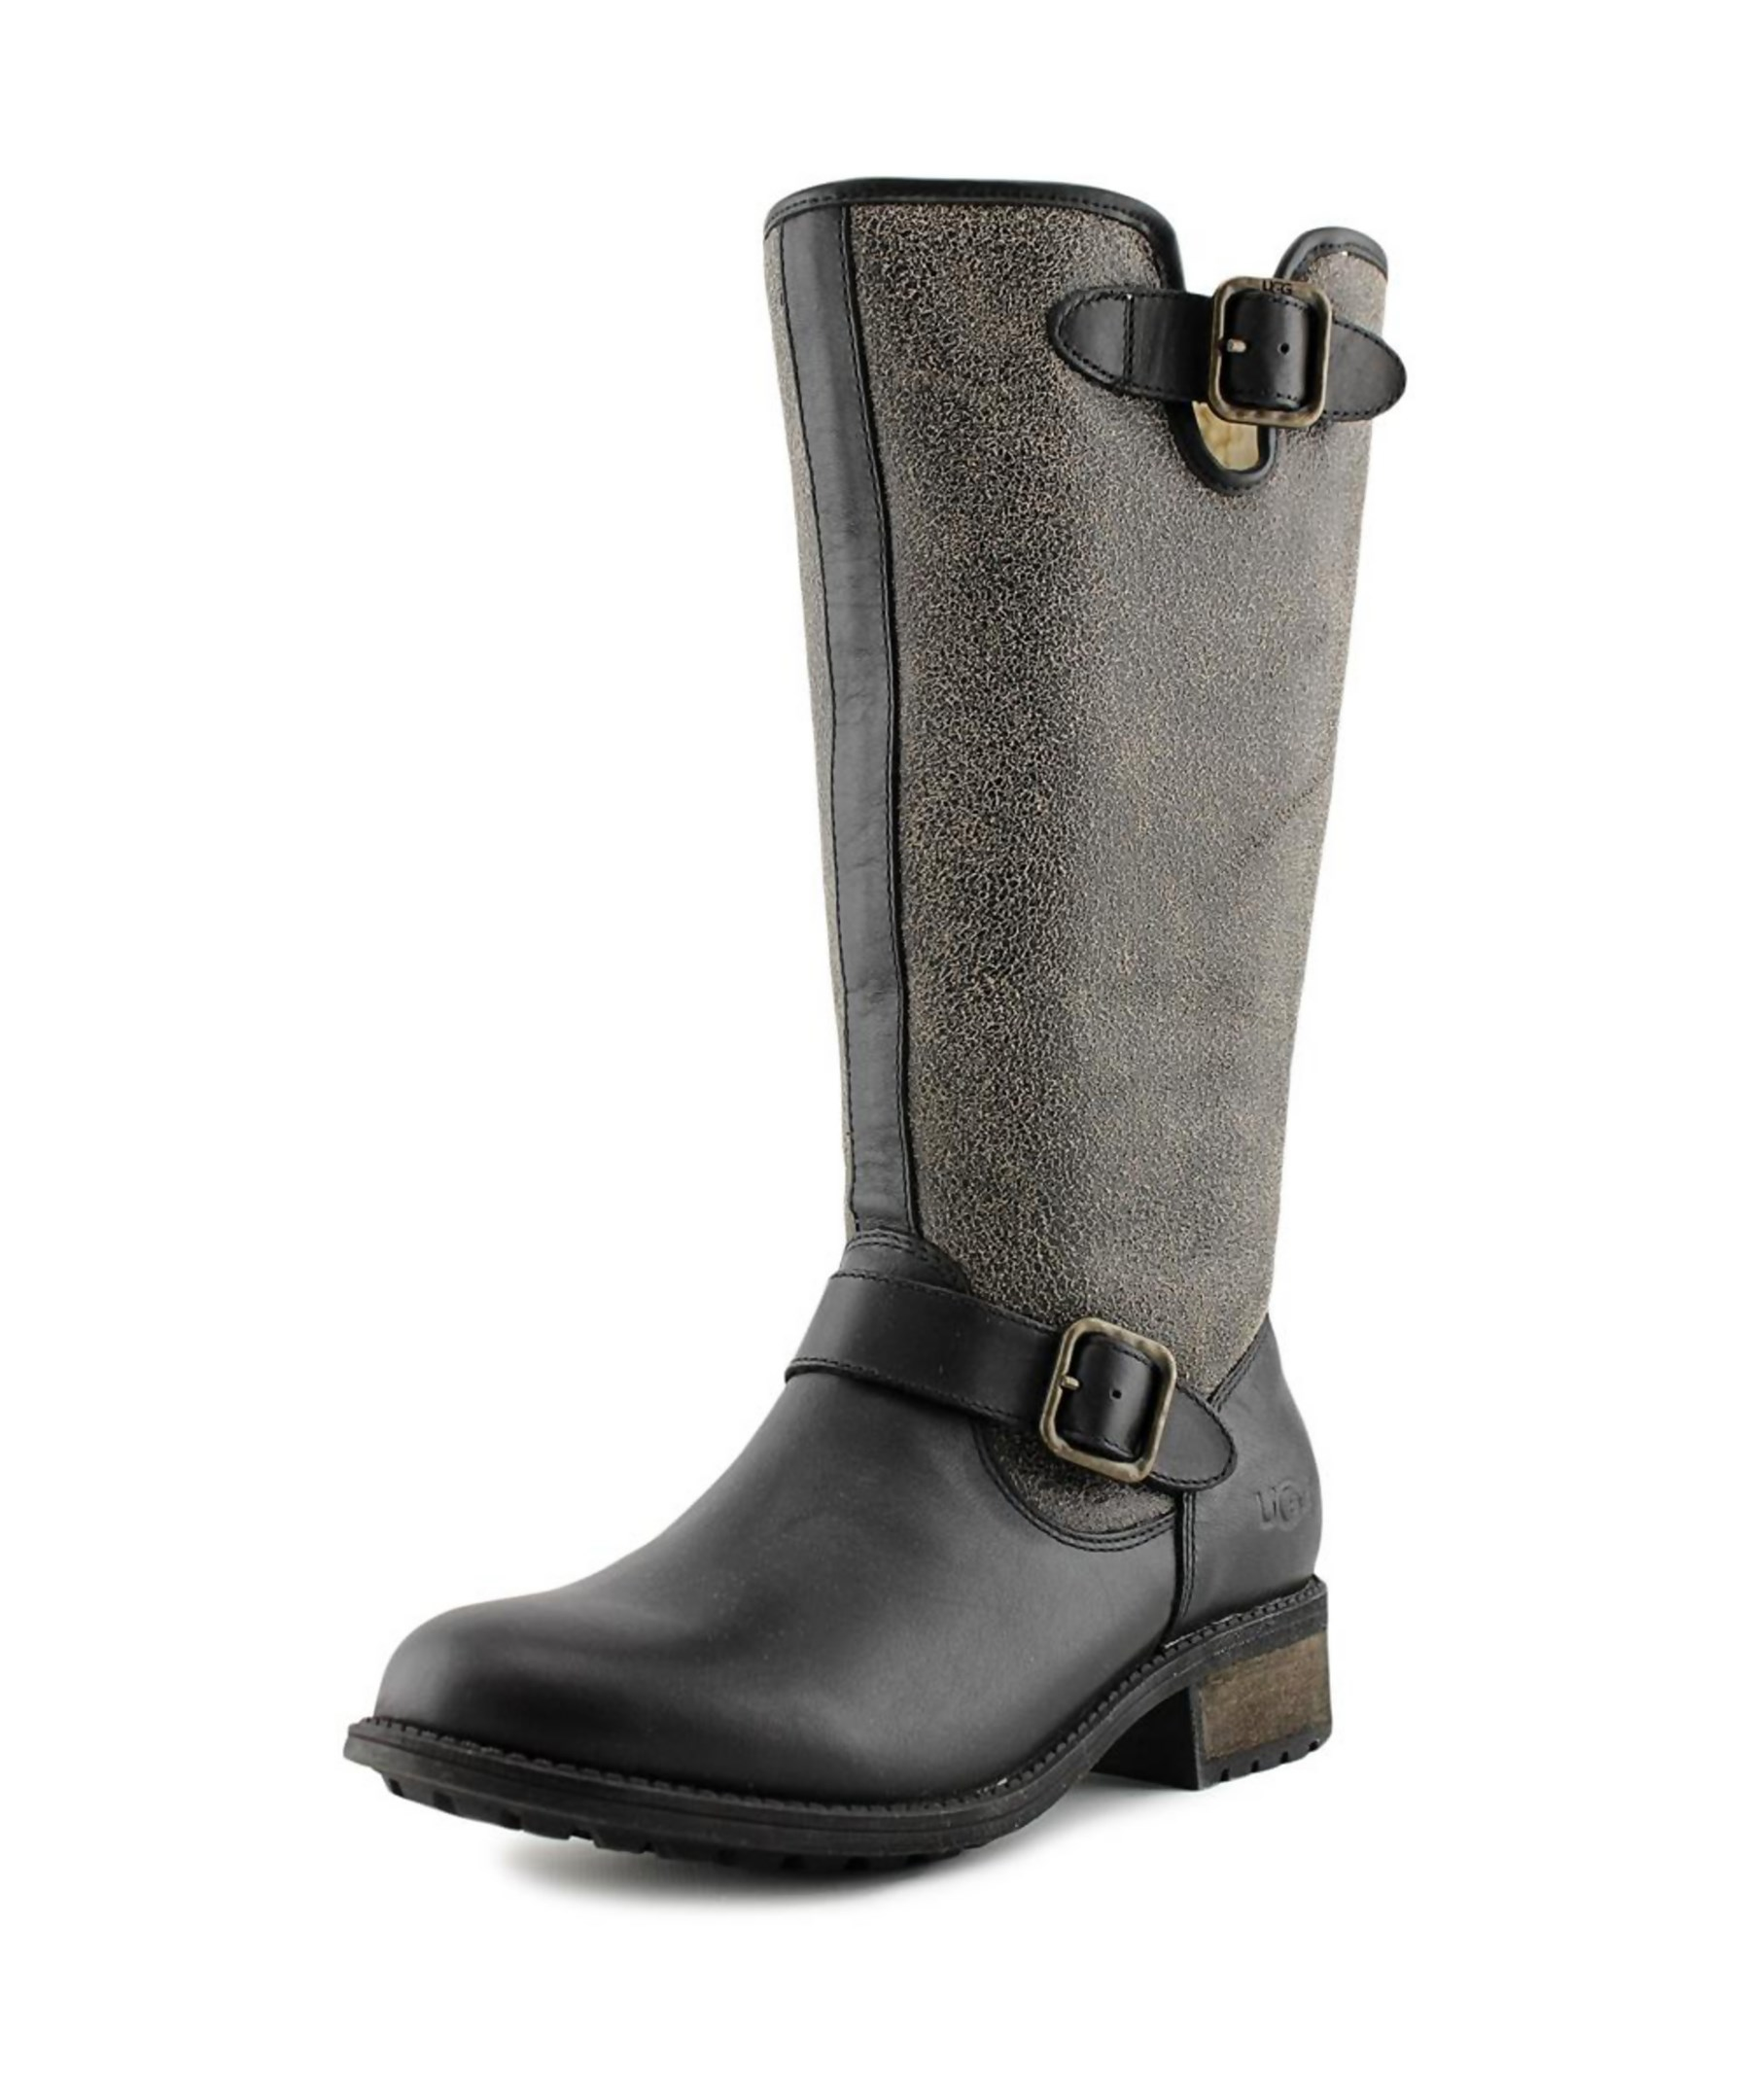 Model Women ATwrQ13FN Harley Davidson D93316 Menu0026#39;s Westmore Brown Leather Motorcycle Boots Shoes ...